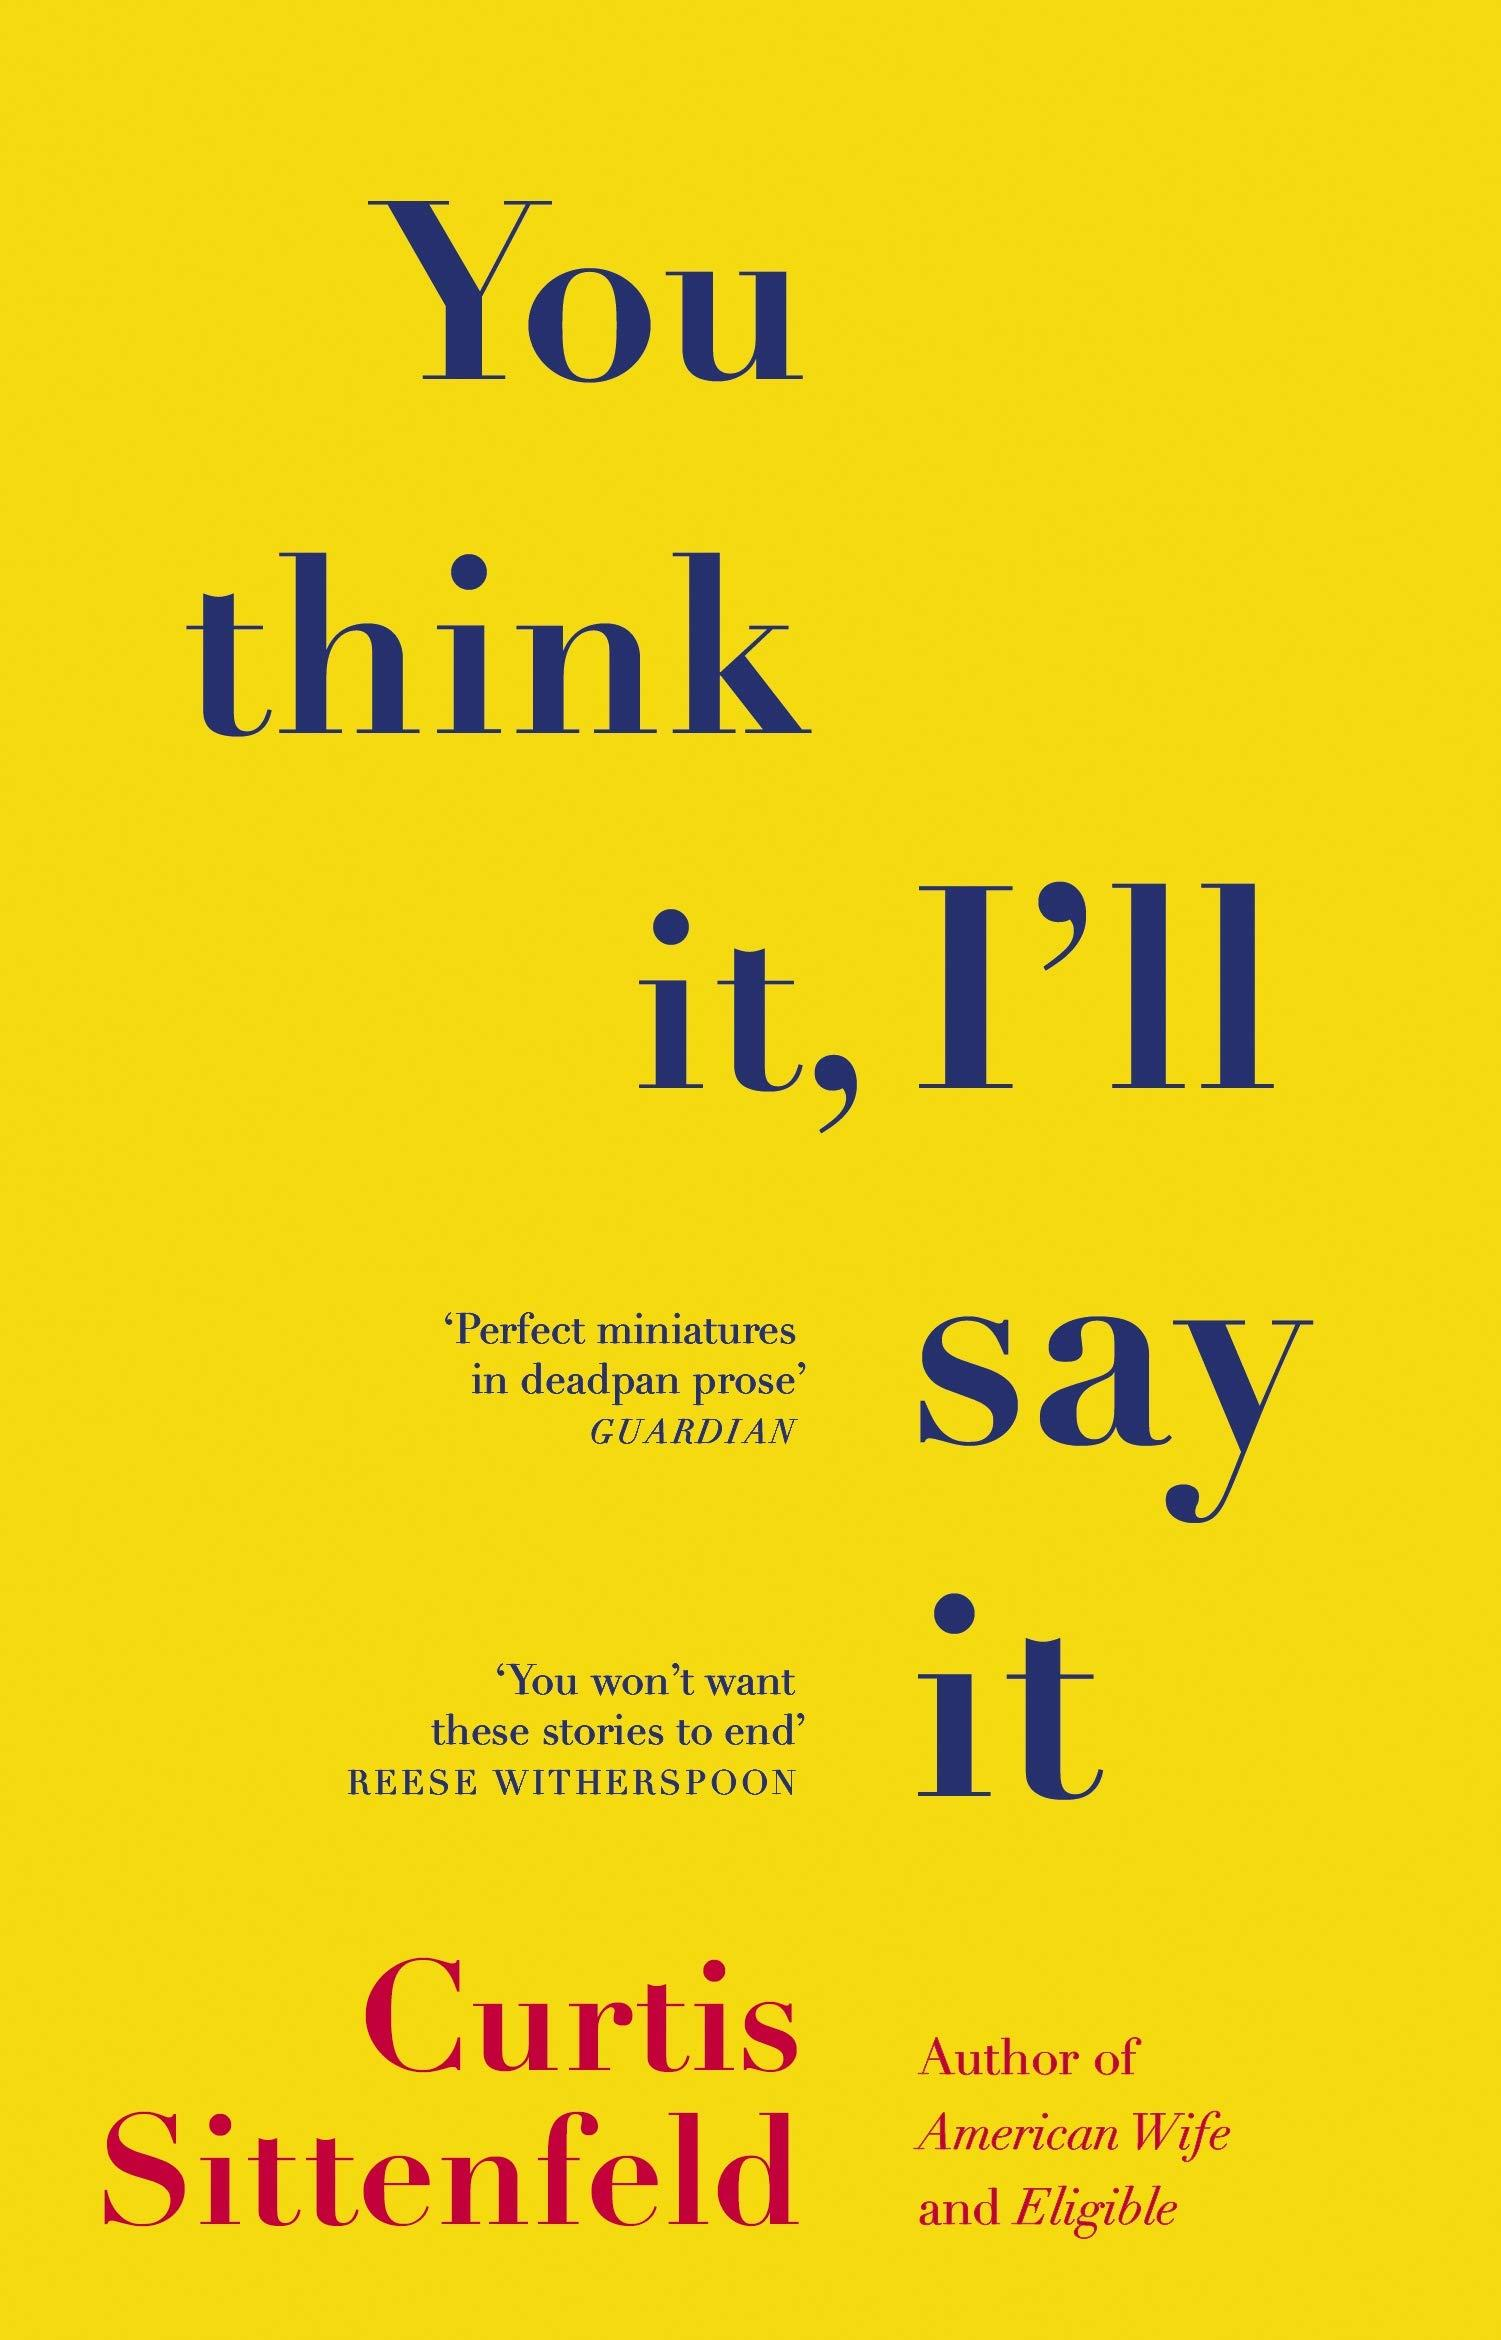 You Think It, Ill Say It: Stories by Curtis Sittenfeld